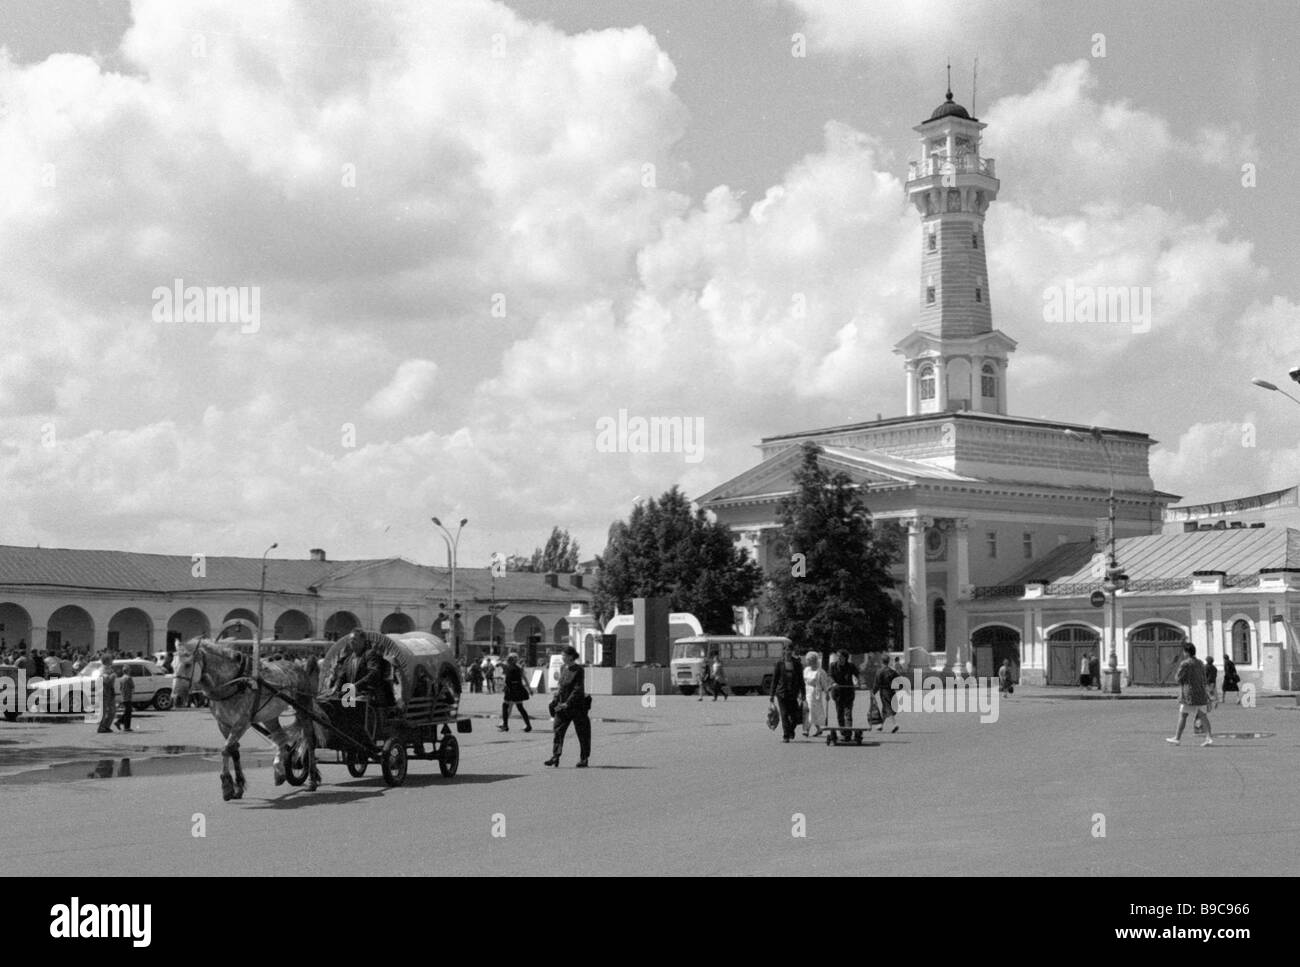 Fire tower (Kostroma): the ancient symbol of the modern city 42